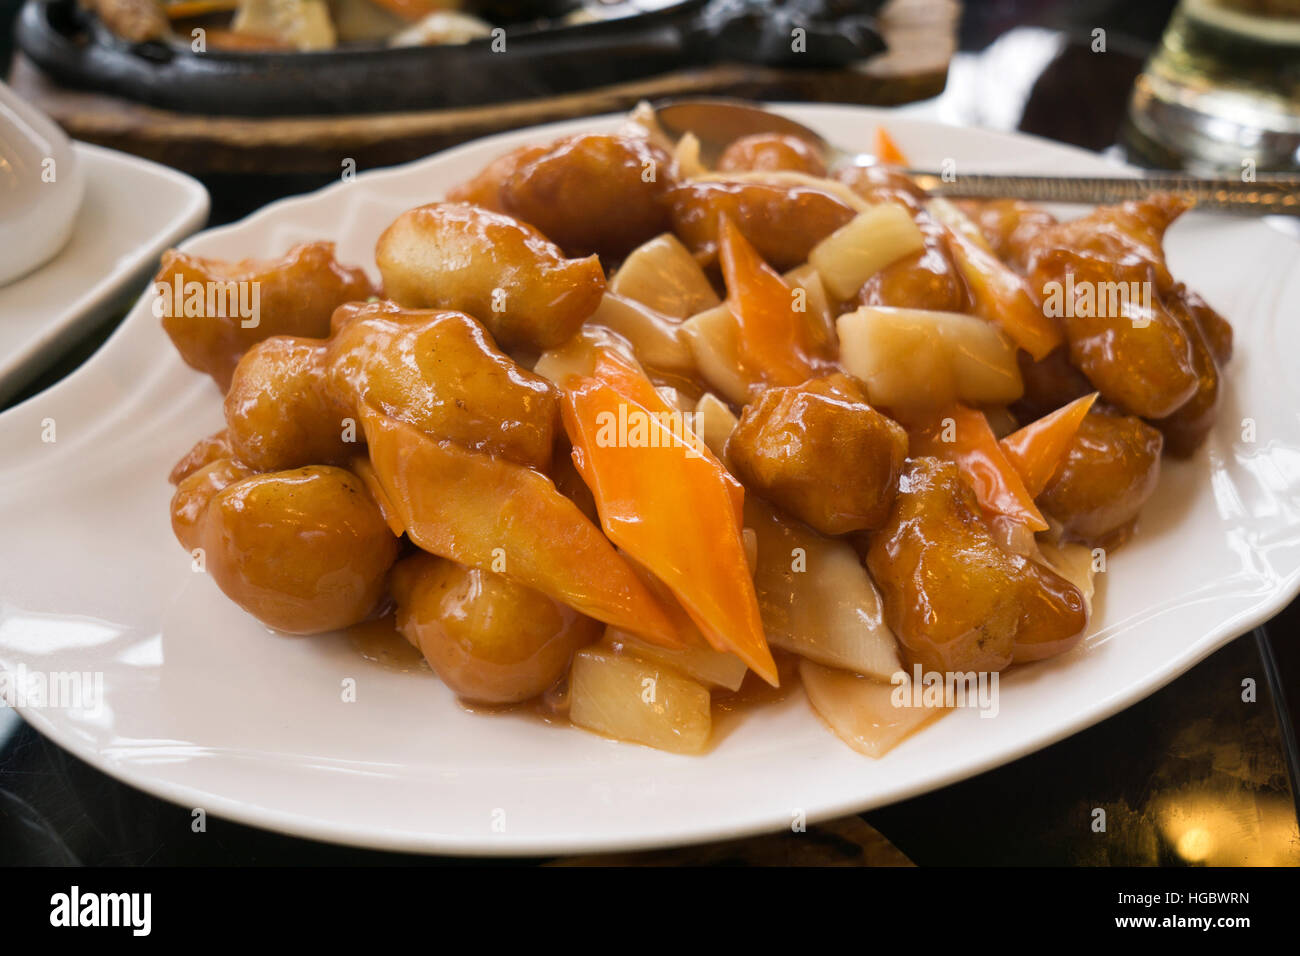 Sweet and sour chicken with vegetable on a plate - Stock Image